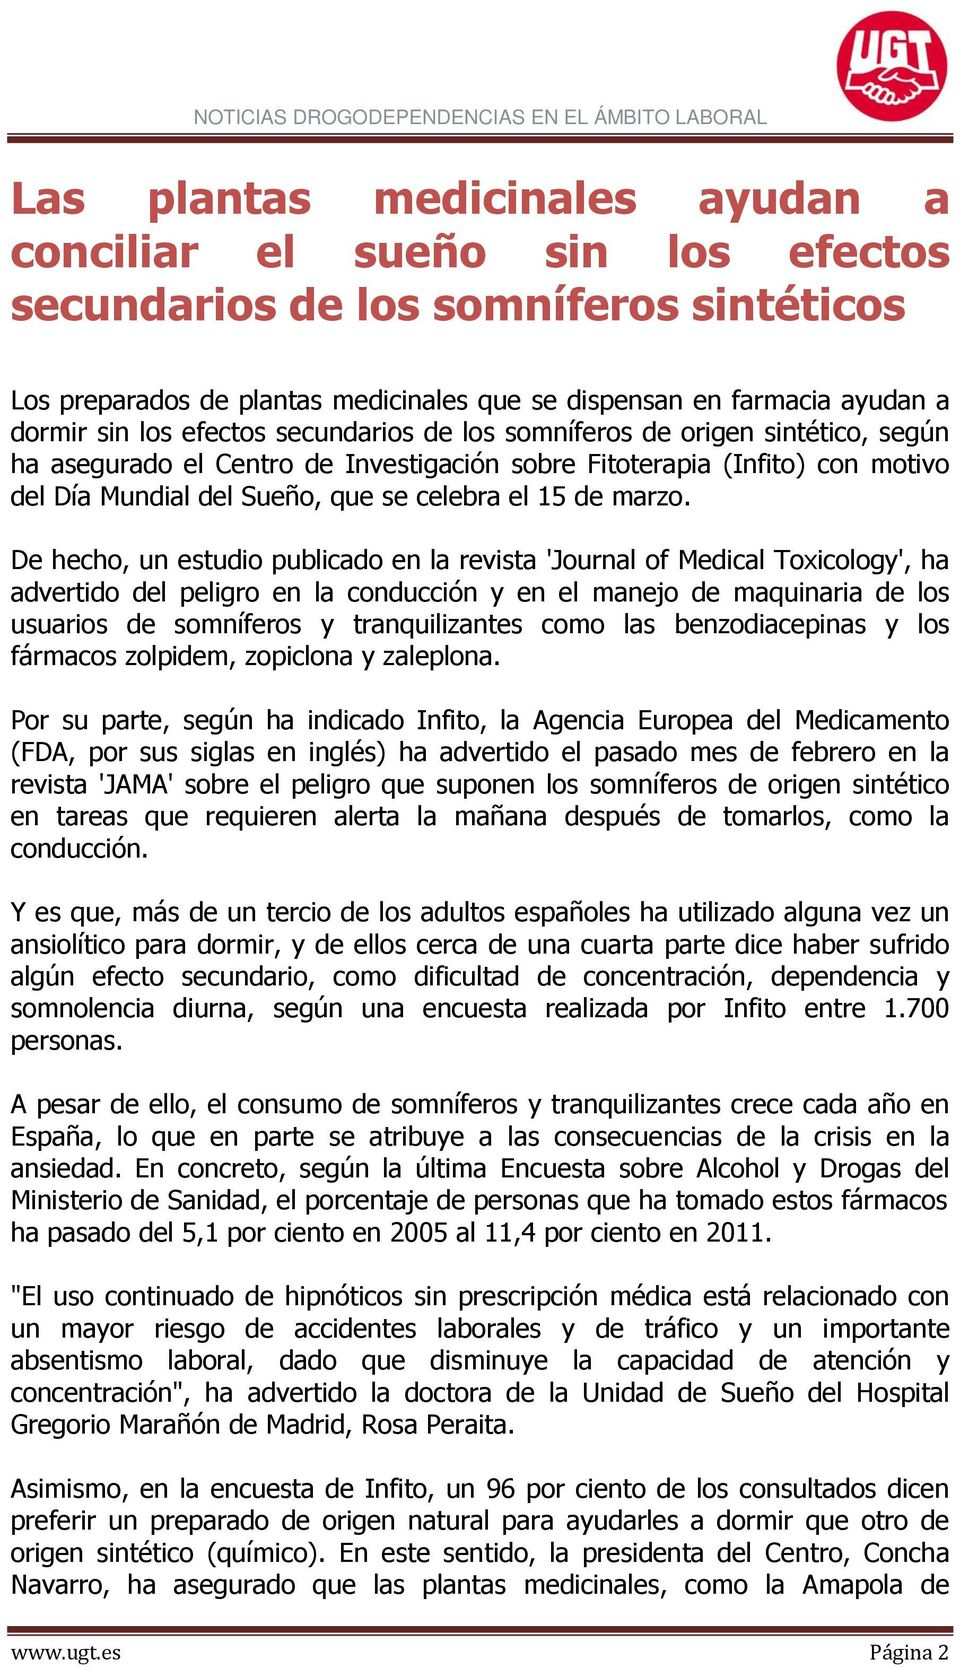 De hecho, un estudio publicado en la revista 'Journal of Medical Toxicology', ha advertido del peligro en la conducción y en el manejo de maquinaria de los usuarios de somníferos y tranquilizantes